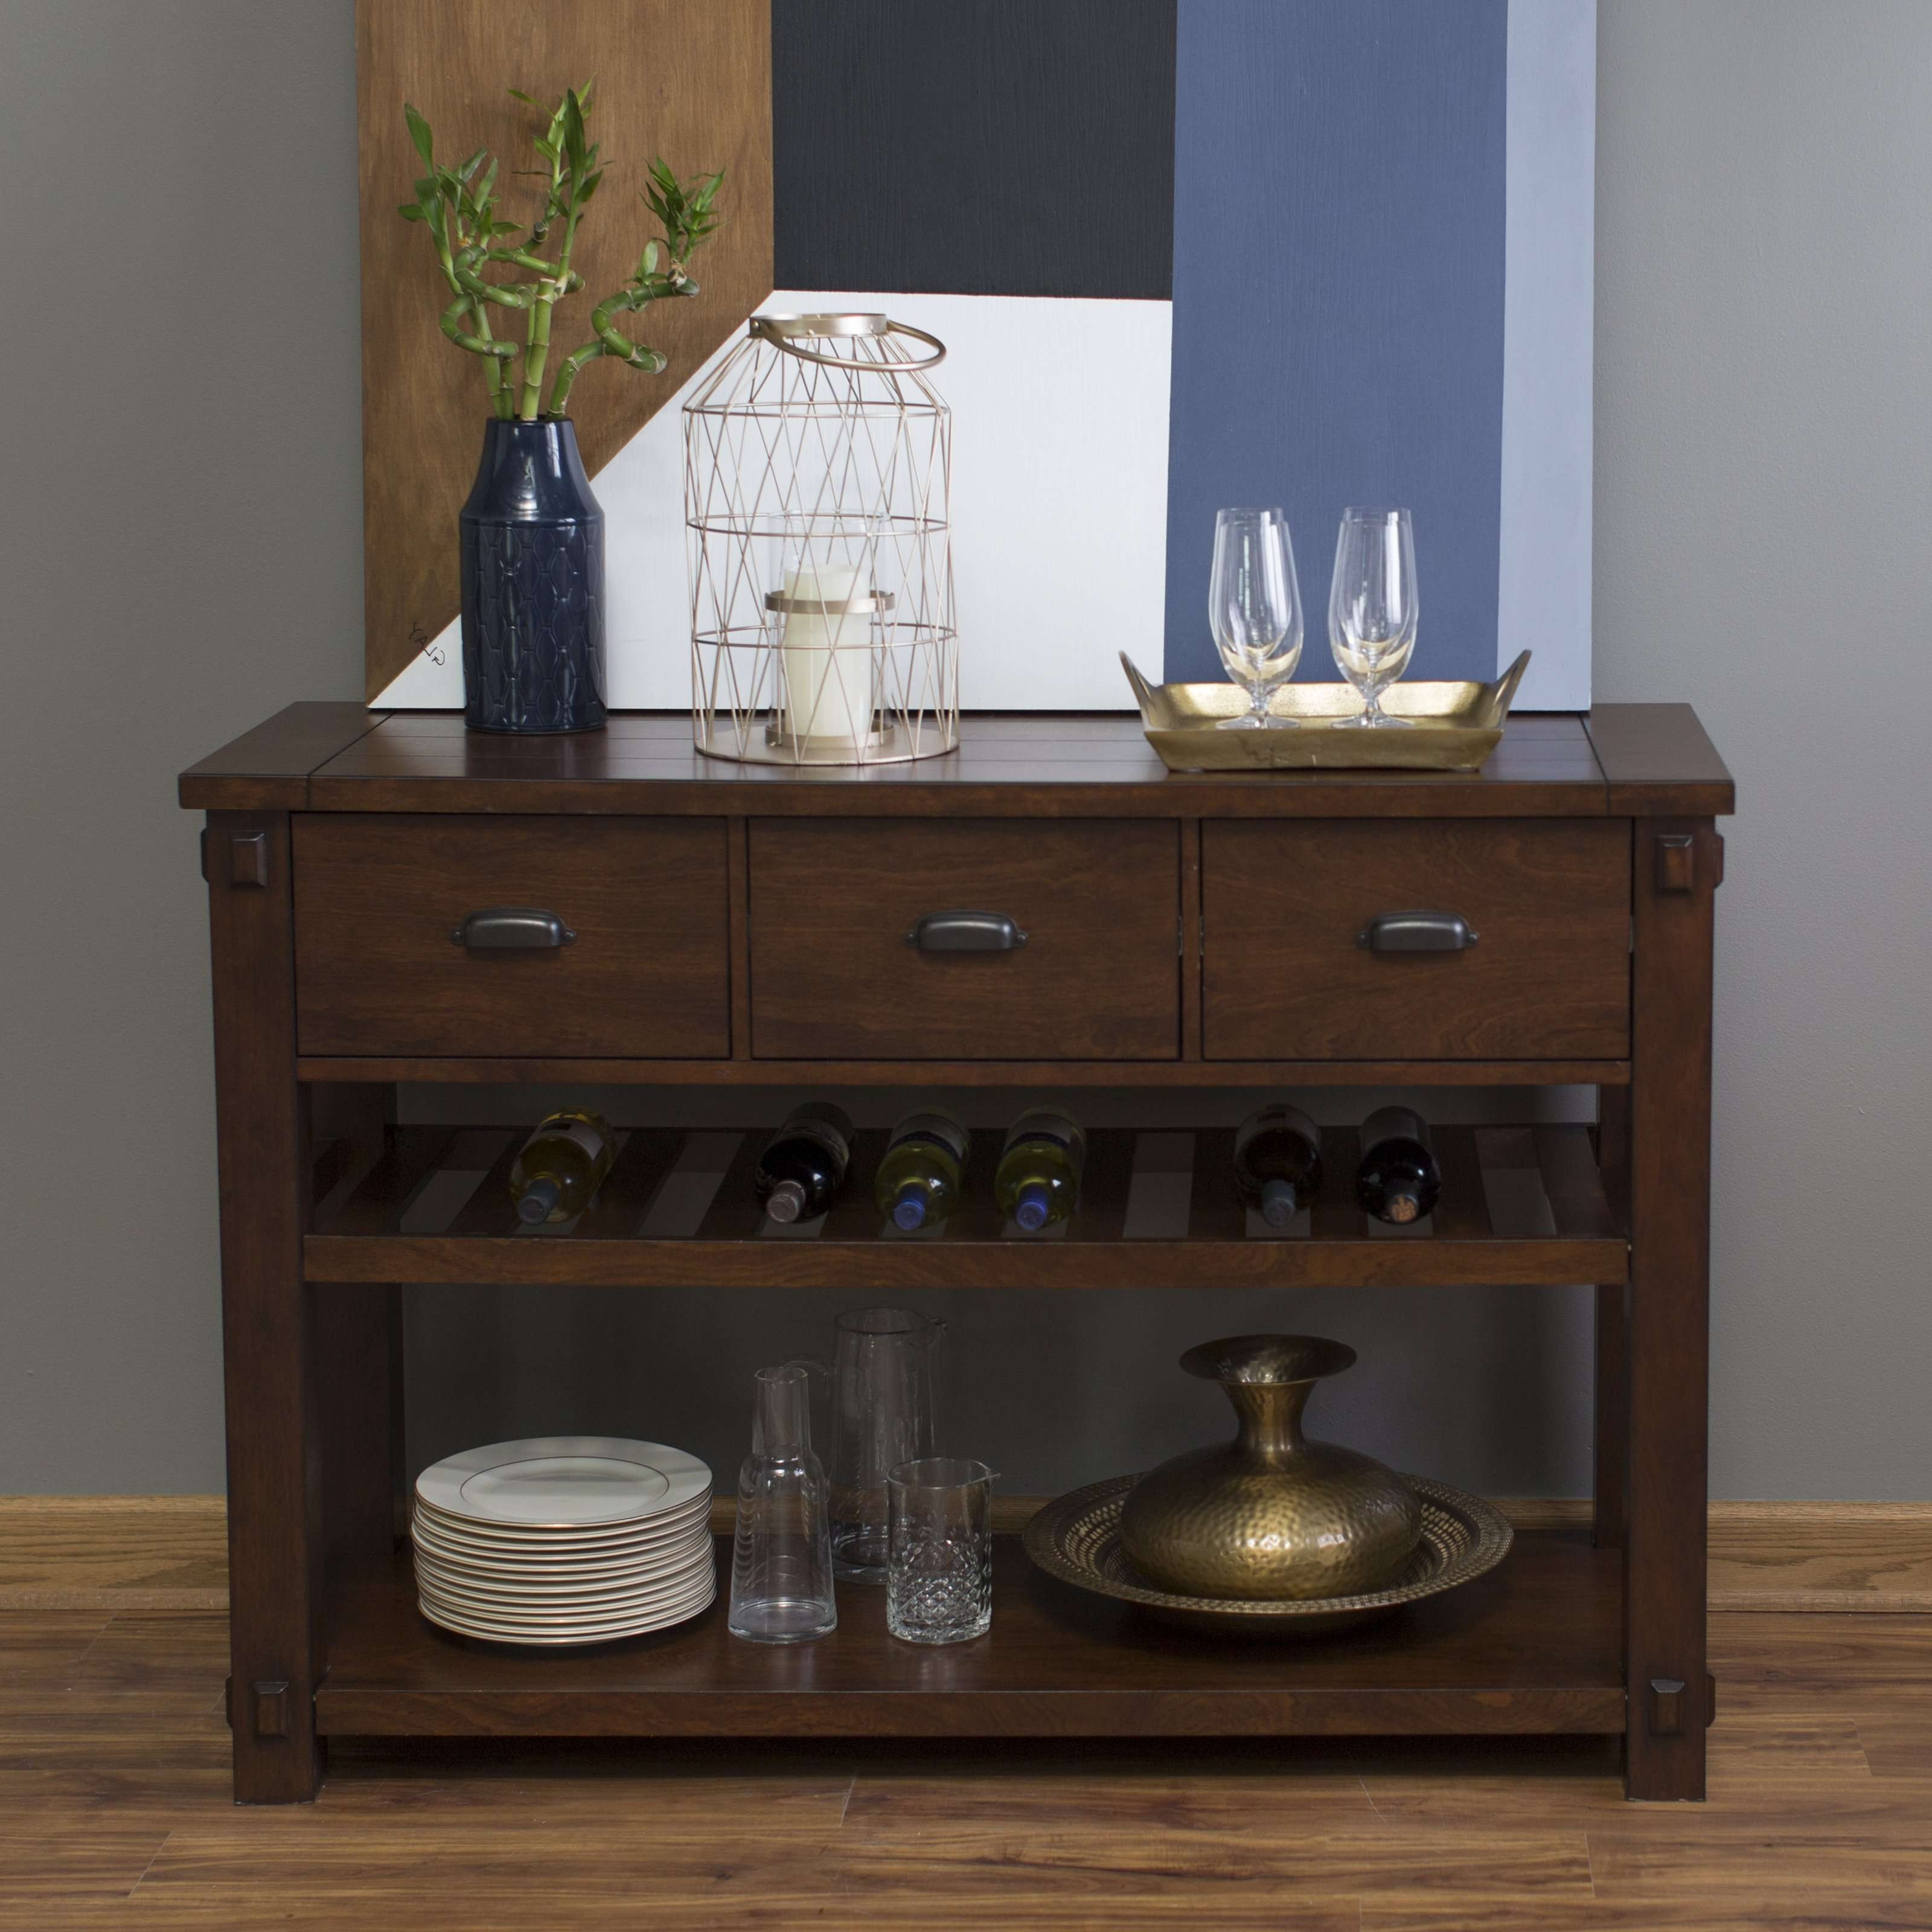 Sideboards & Buffets | Hayneedle Intended For Furniture Sideboards (View 15 of 20)